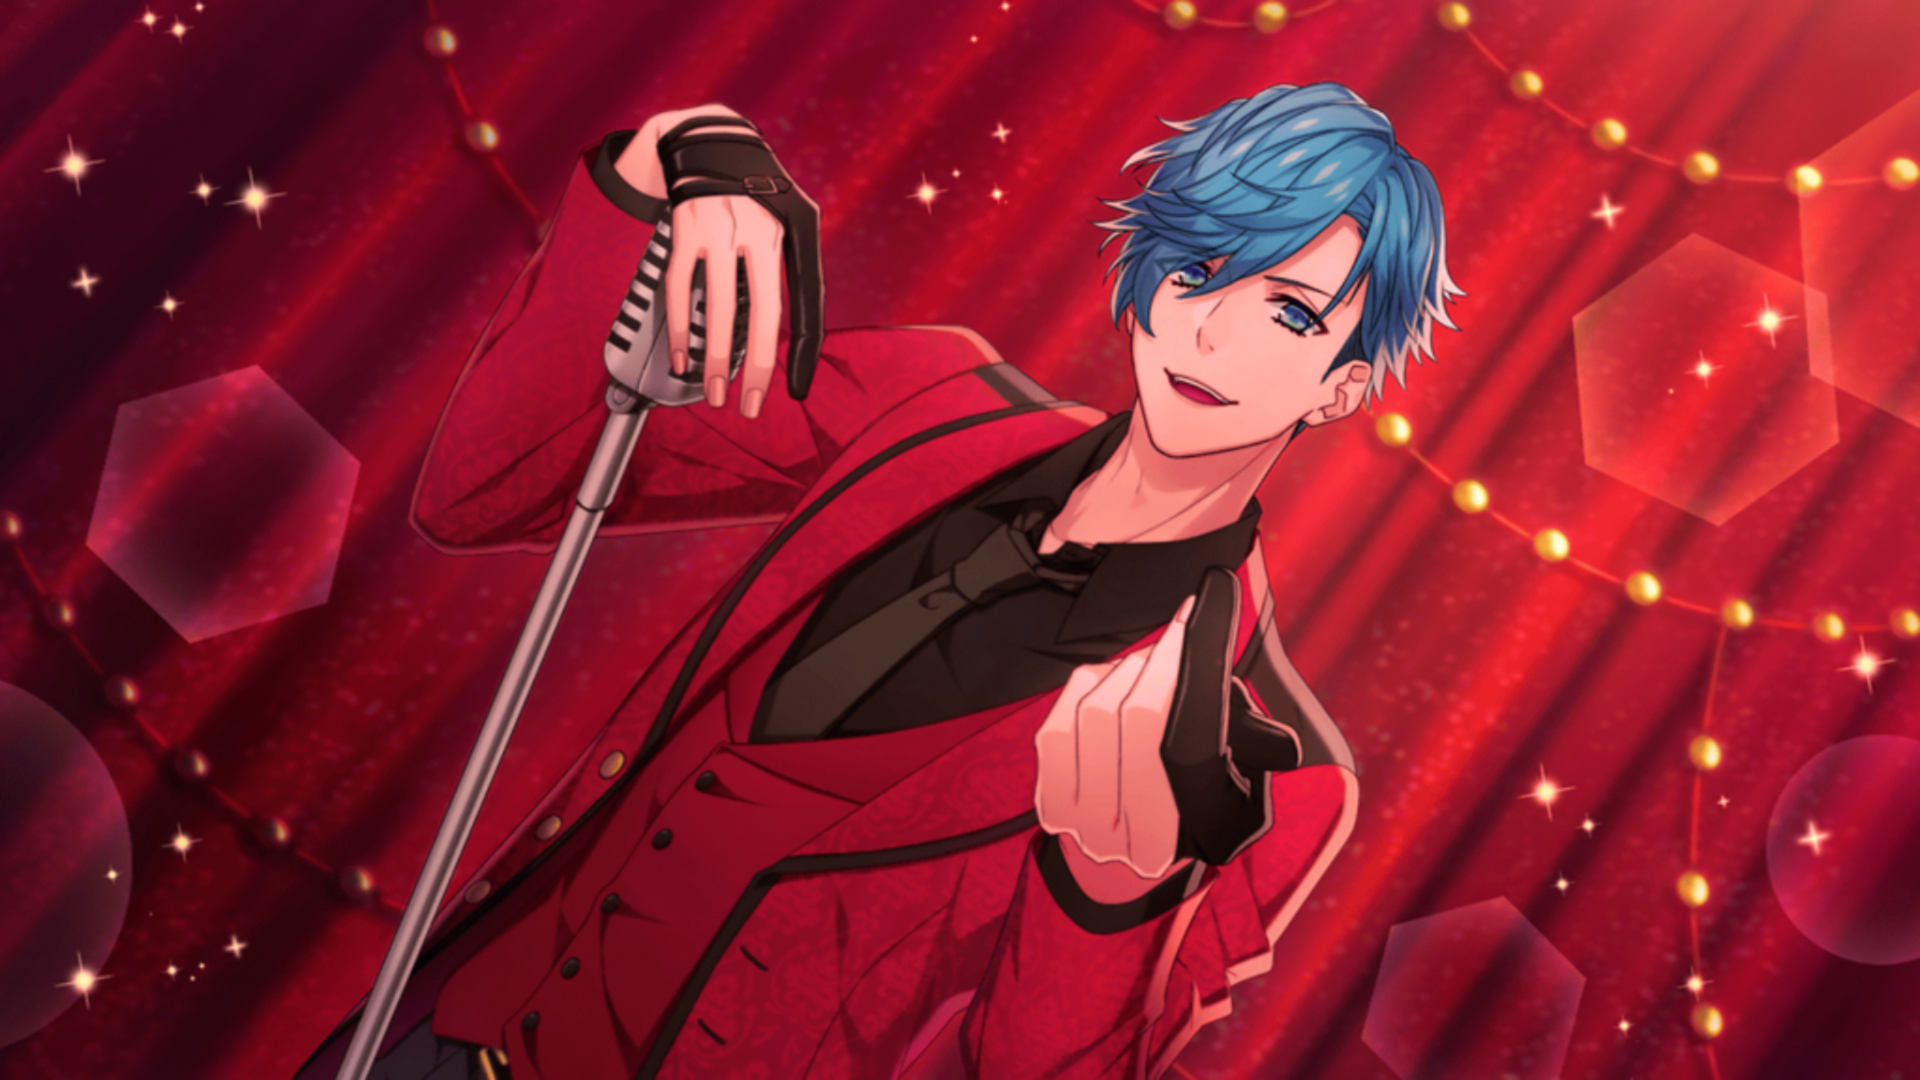 【Rose Bath】Kento Aizome Awaken Full.png